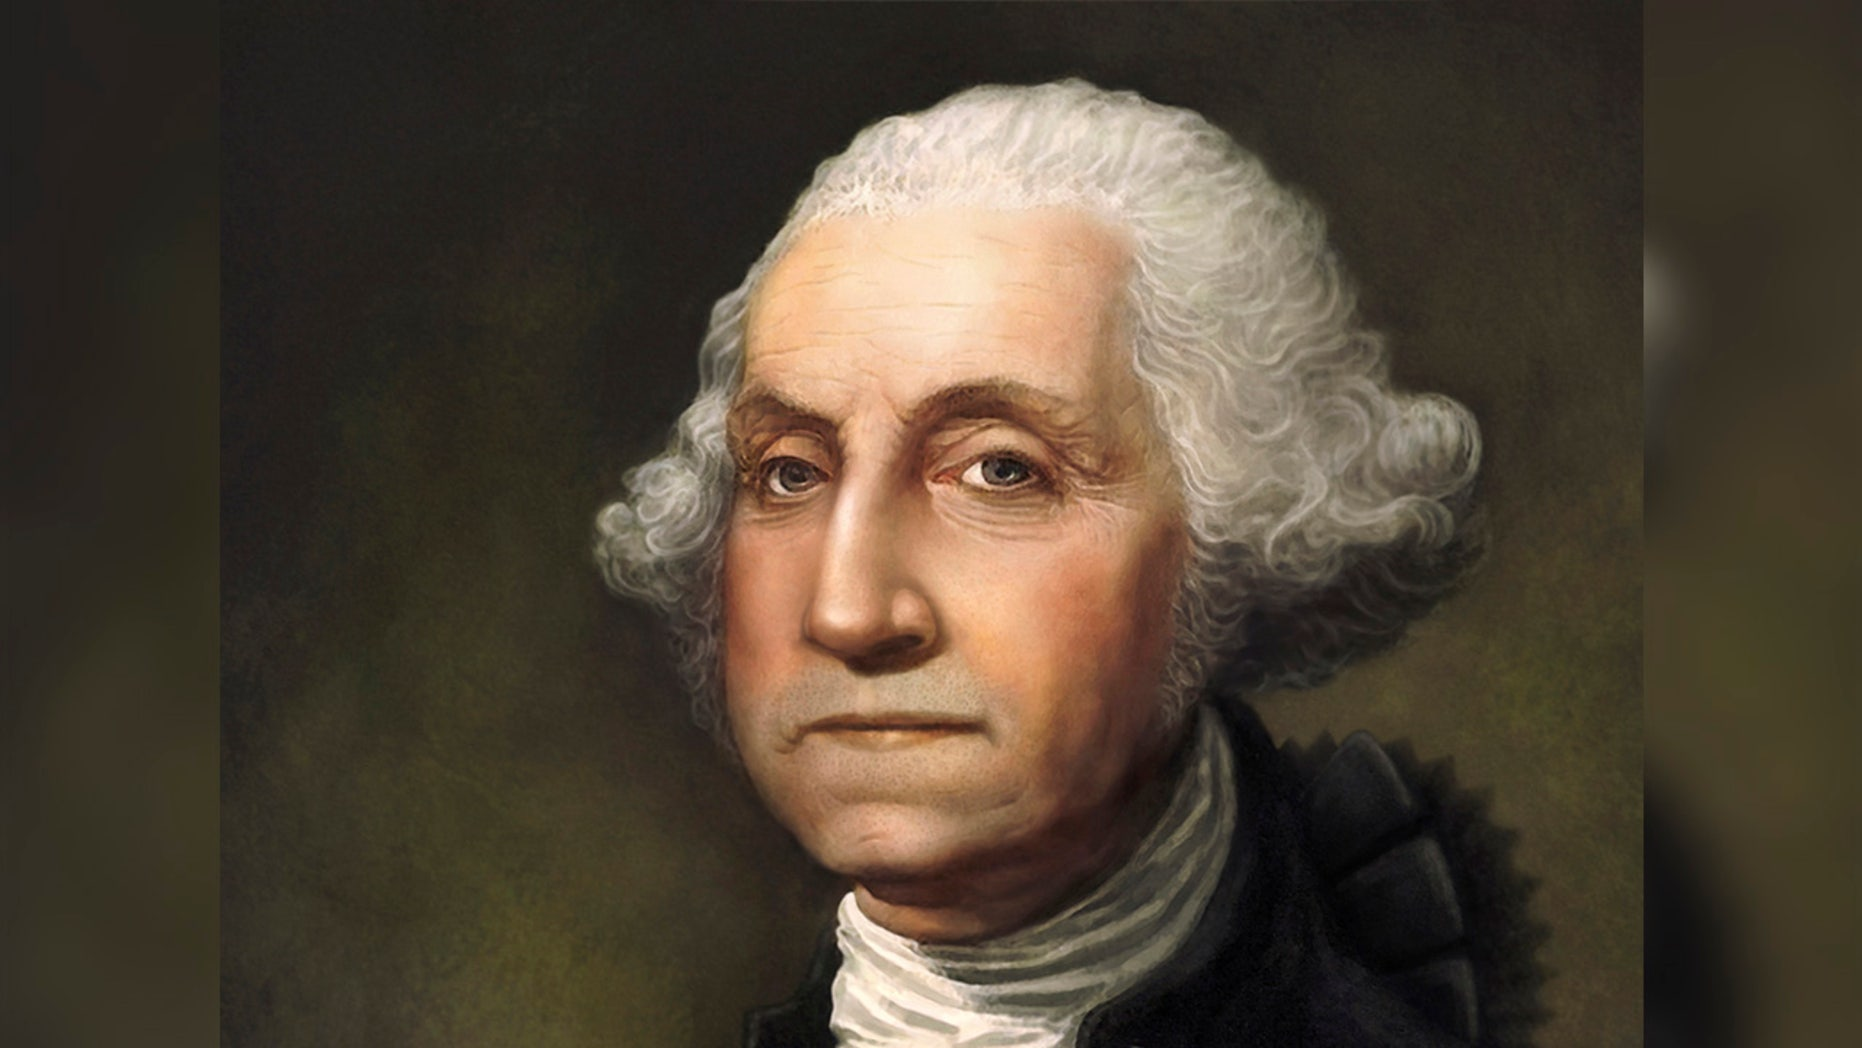 """George Washington Portrait. Original digital painting by Joe Cicak of America's founding father and first president, George Washington. Image created in Photoshop using digital brushes to simulate classic 18th century portrait styles. No scratches, cracks or other mars from age. Looks like a portrait that was just painted.This painting has a full release.See also my illustration of Ben Franklin."""